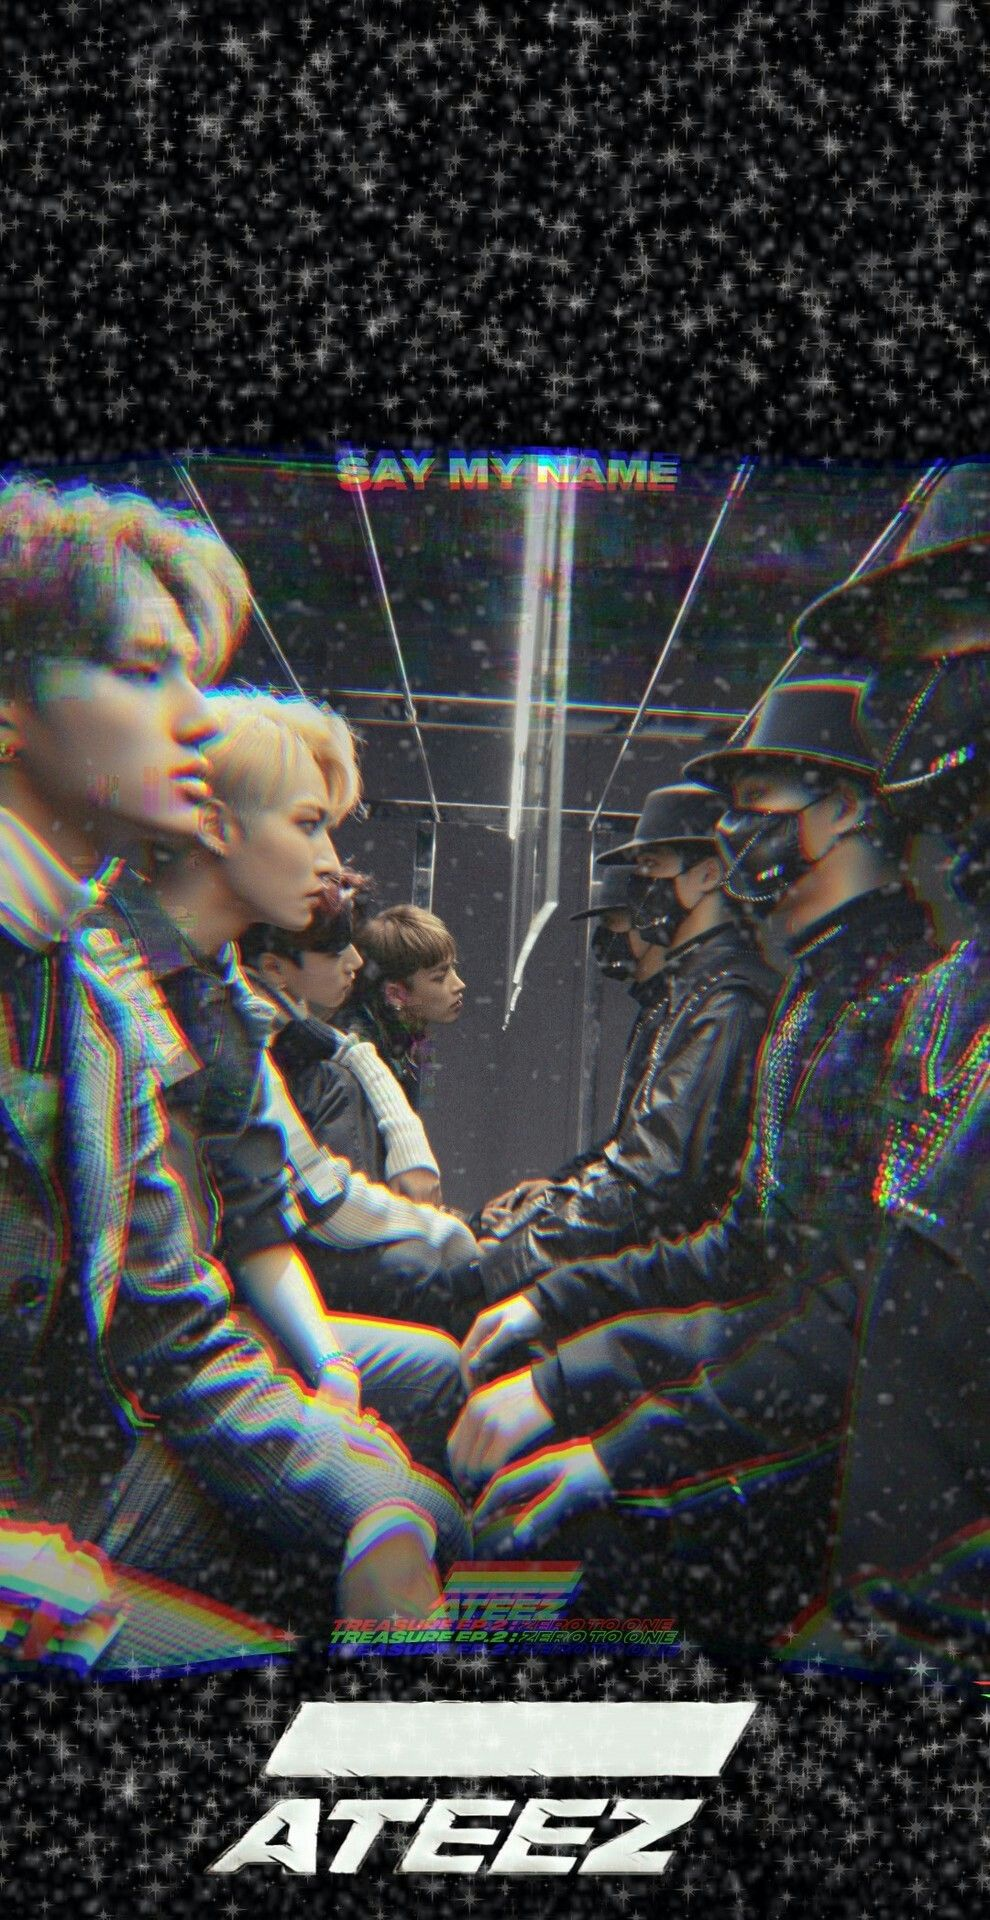 Ateez Kpop Wallpaper lockscreen fondo de pantalla HD